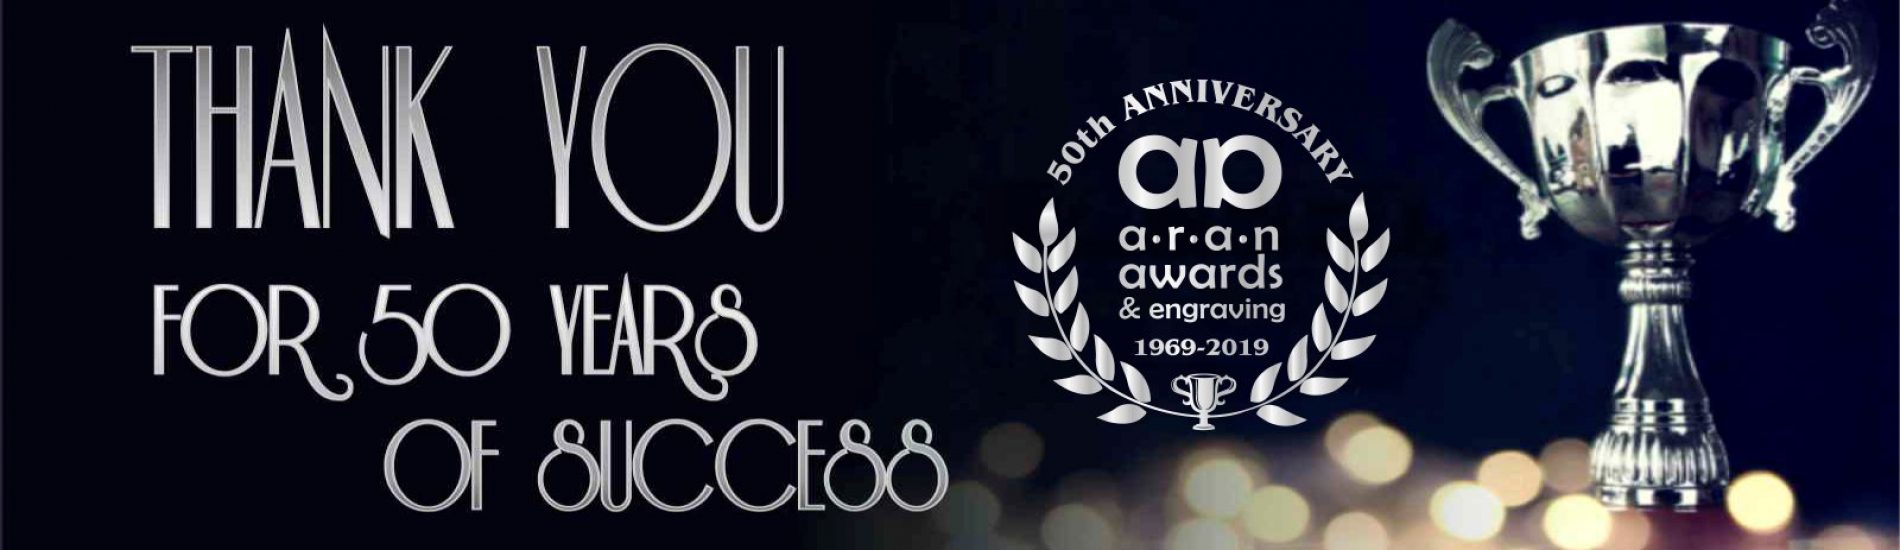 Banner image celebrating 50 years of business. Black background with silver trophy and Aran Awards logo.